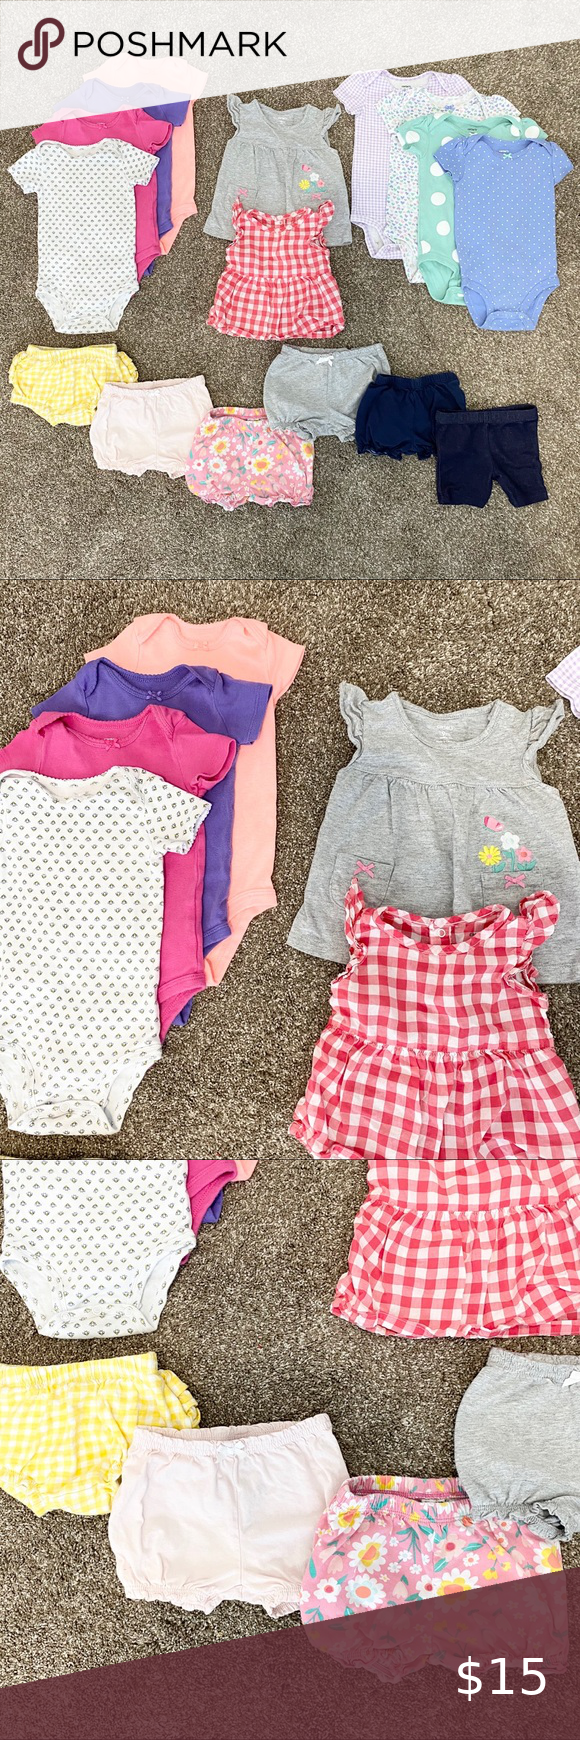 Baby Girl Bundle 9 Months 16-piece bundle of baby girl summer clothes in